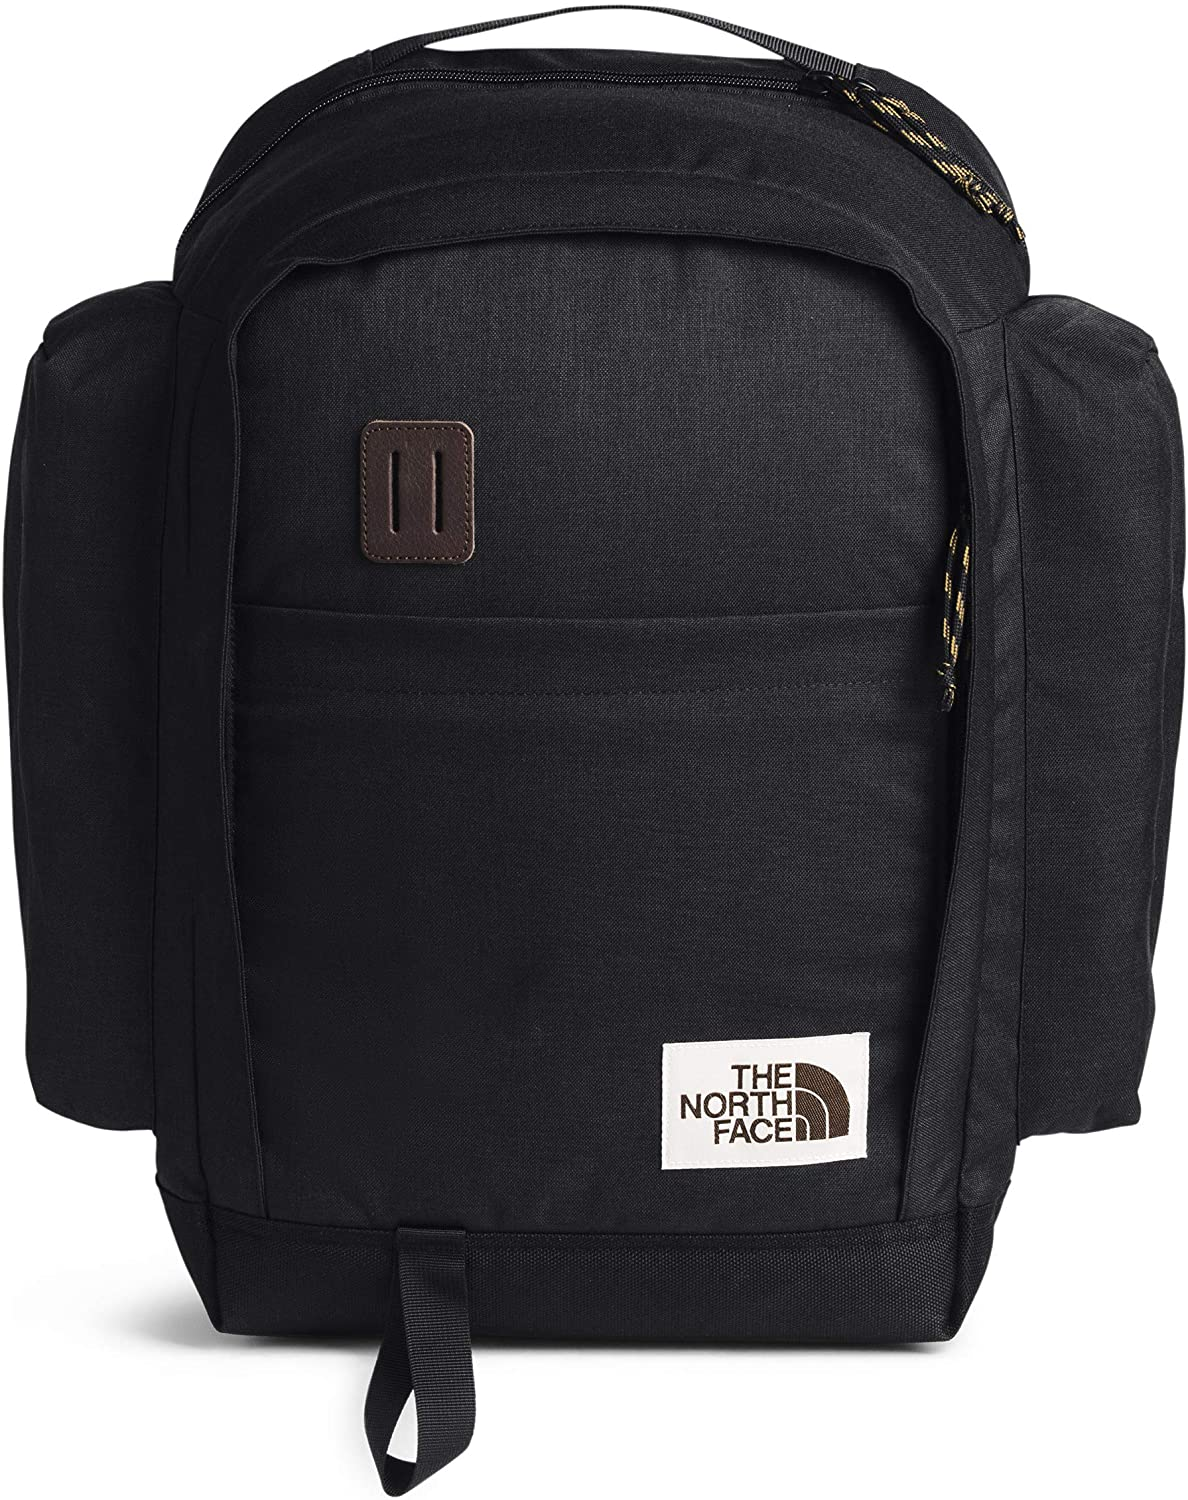 The North Face Ruthsac, TNF Black Heather, OS